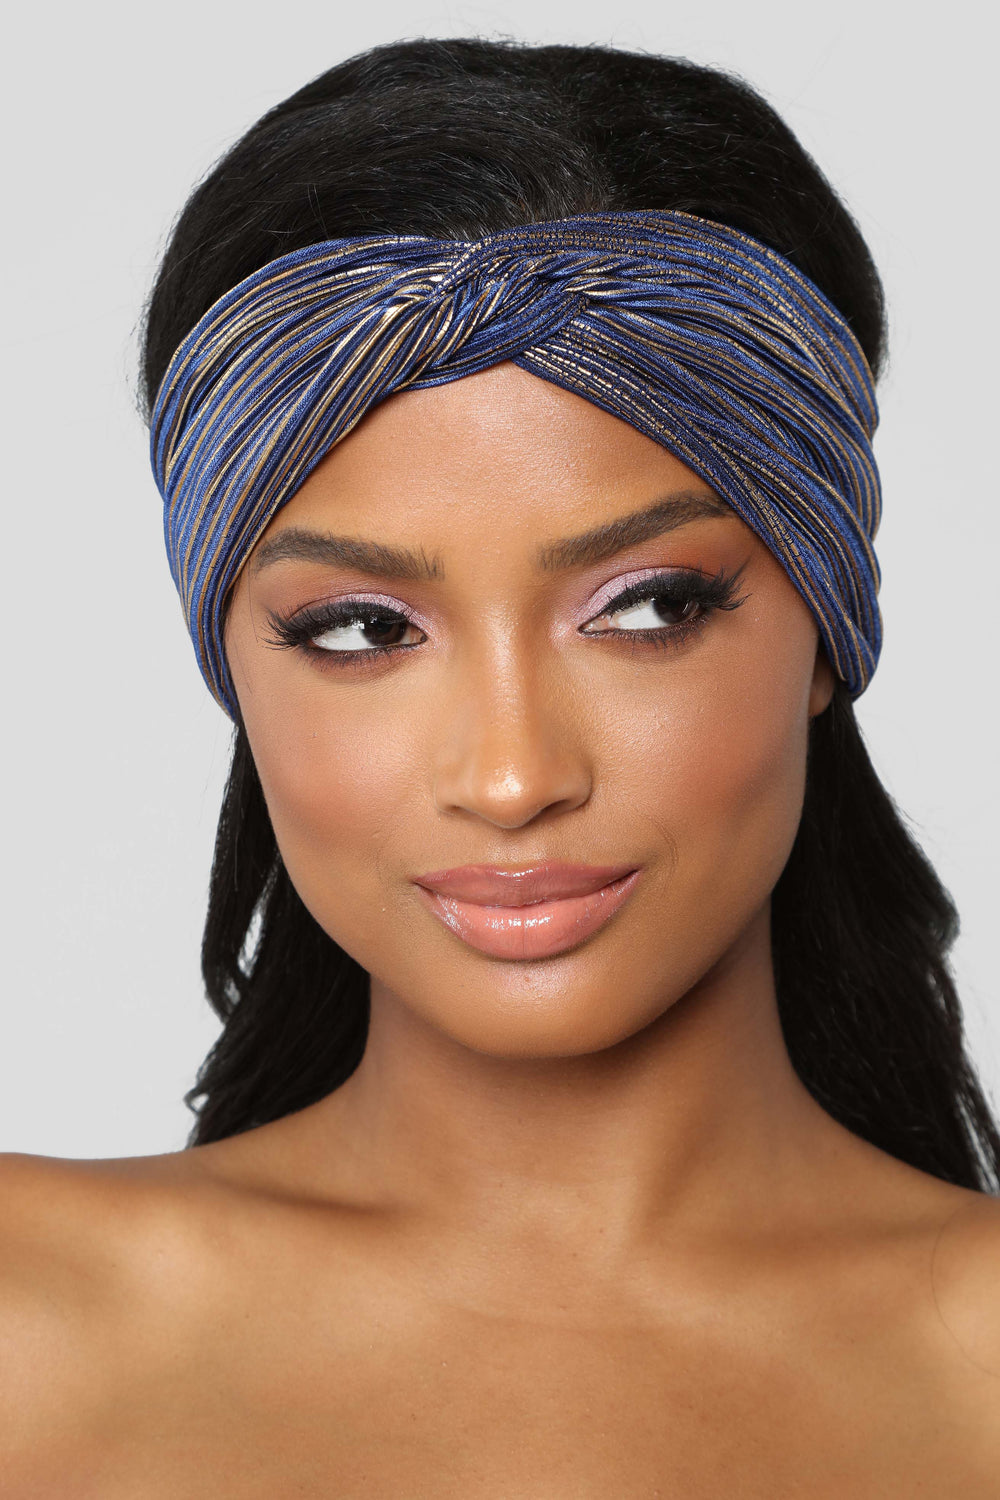 Got To Be A Head Wrap - Black